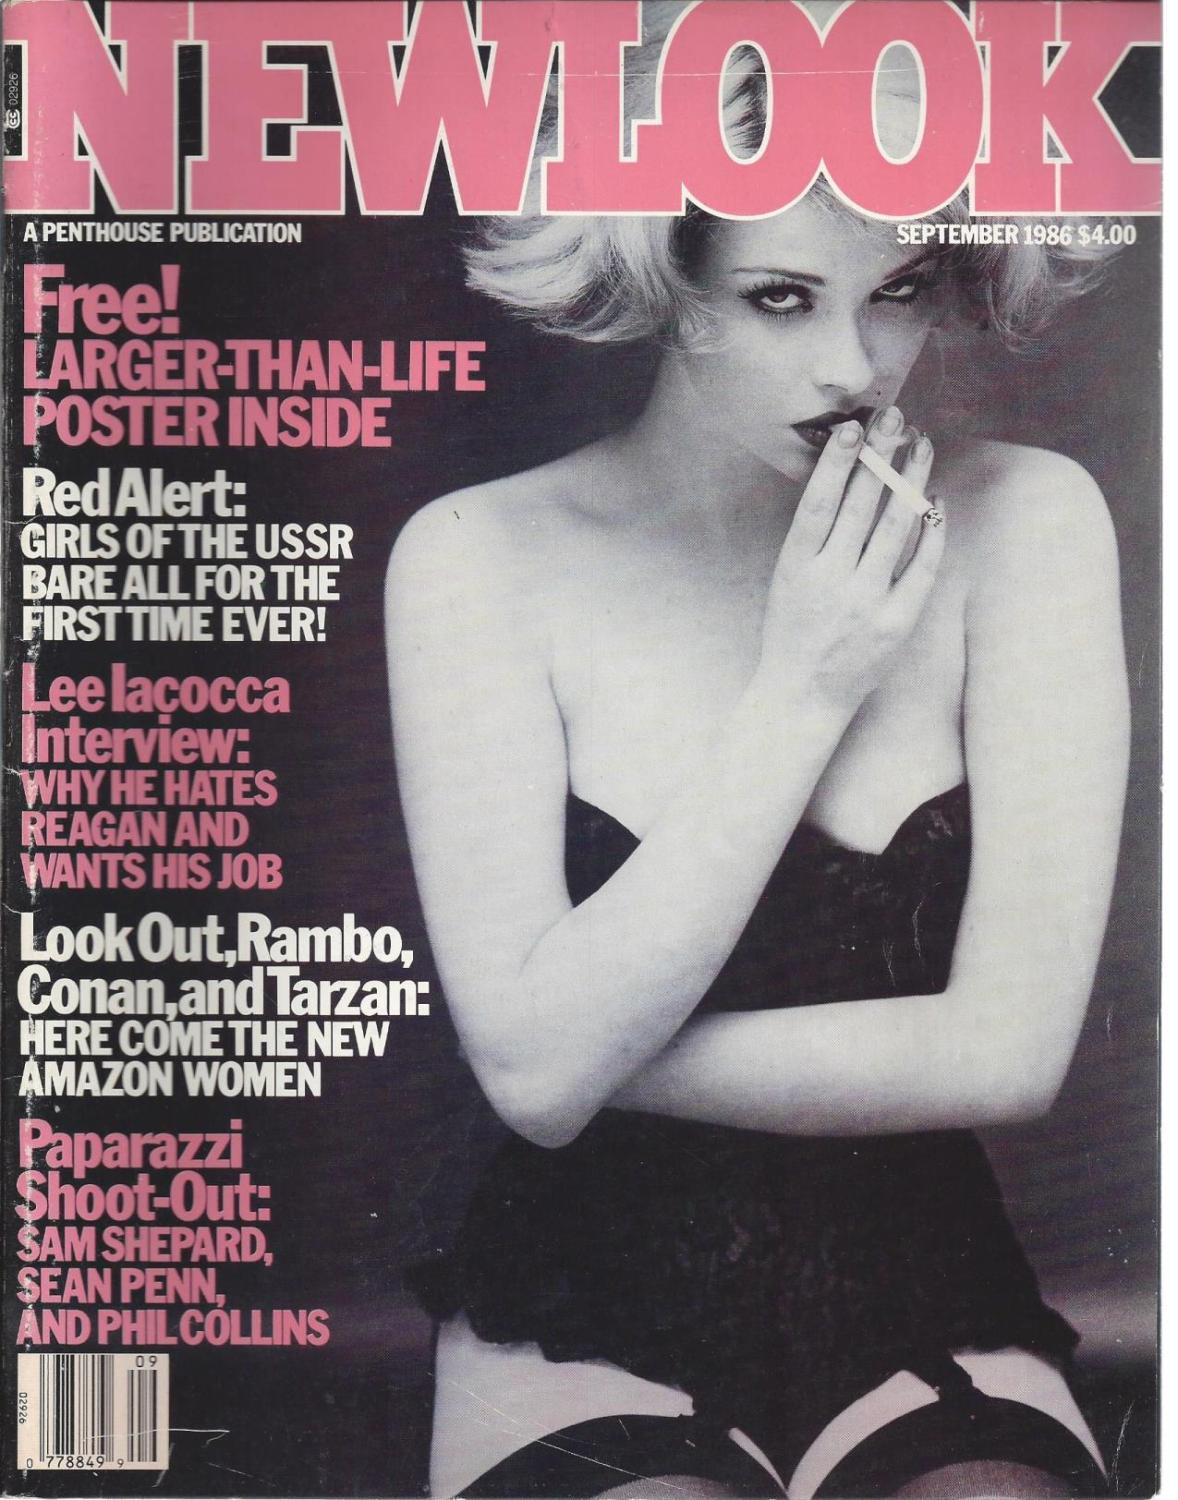 Newlook September 1986 Lee Iacocca Interview, Sam Shepard Sean Penn Phil Collins, Newlook International